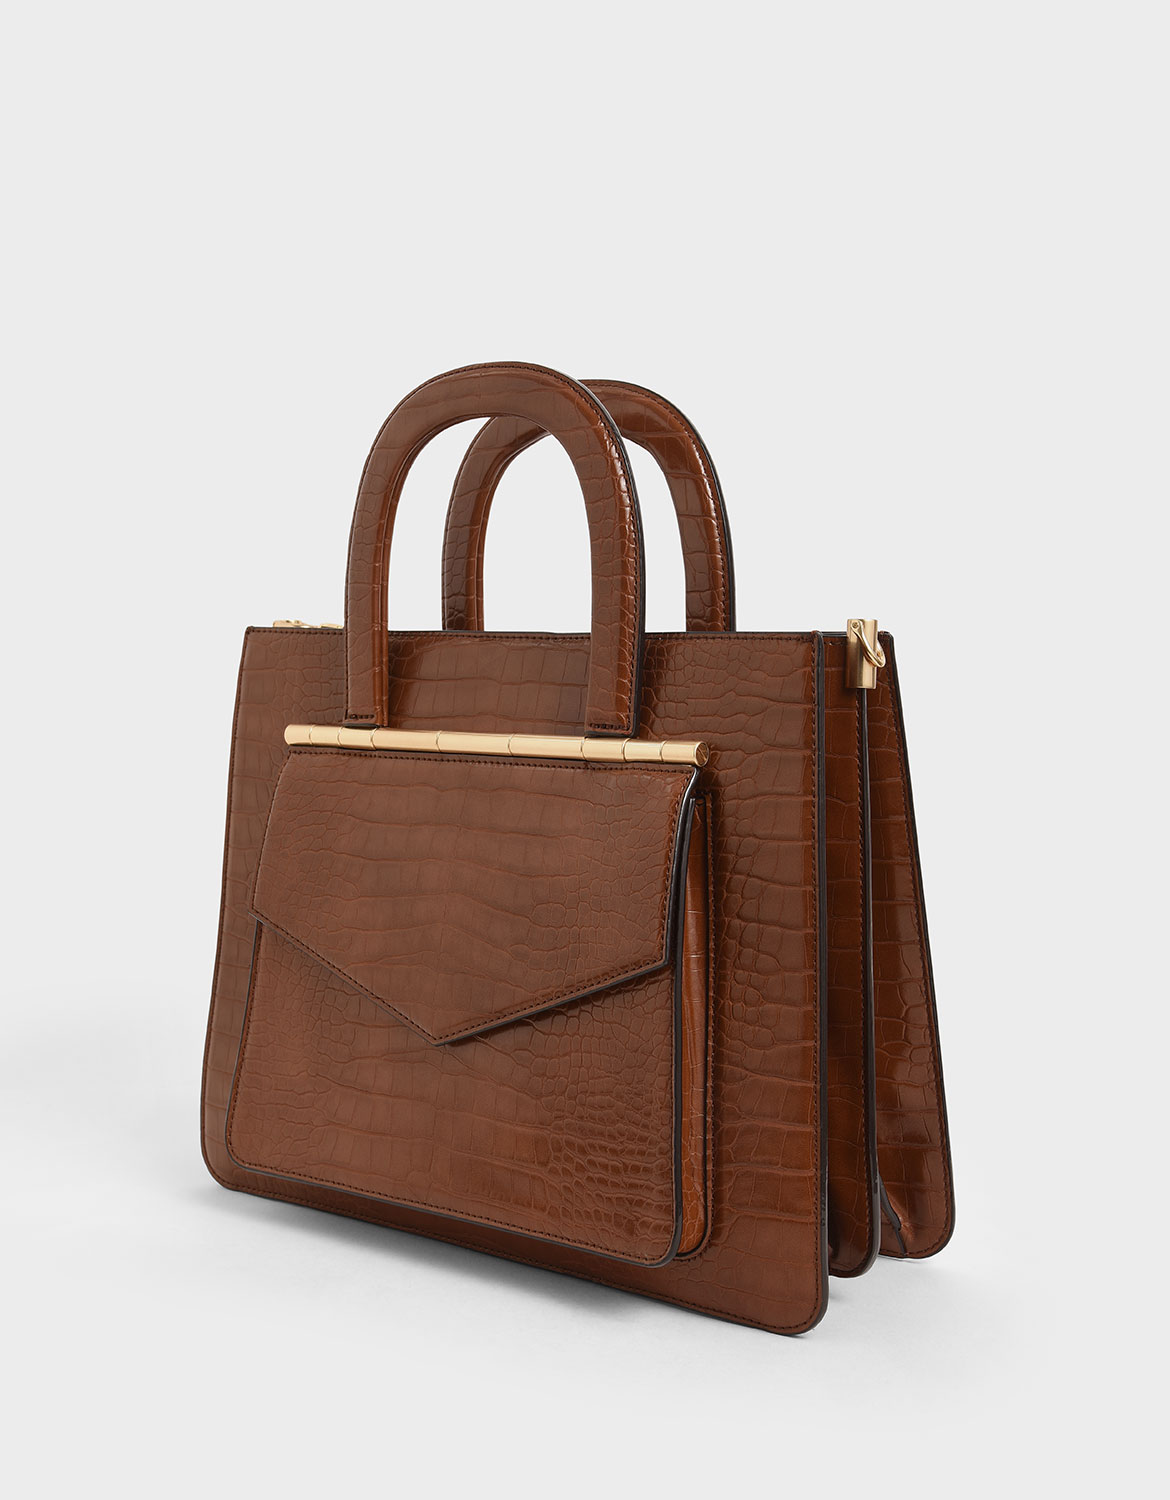 Women's dark brown croc-effect structured tote bag – CHARLES & KEITH